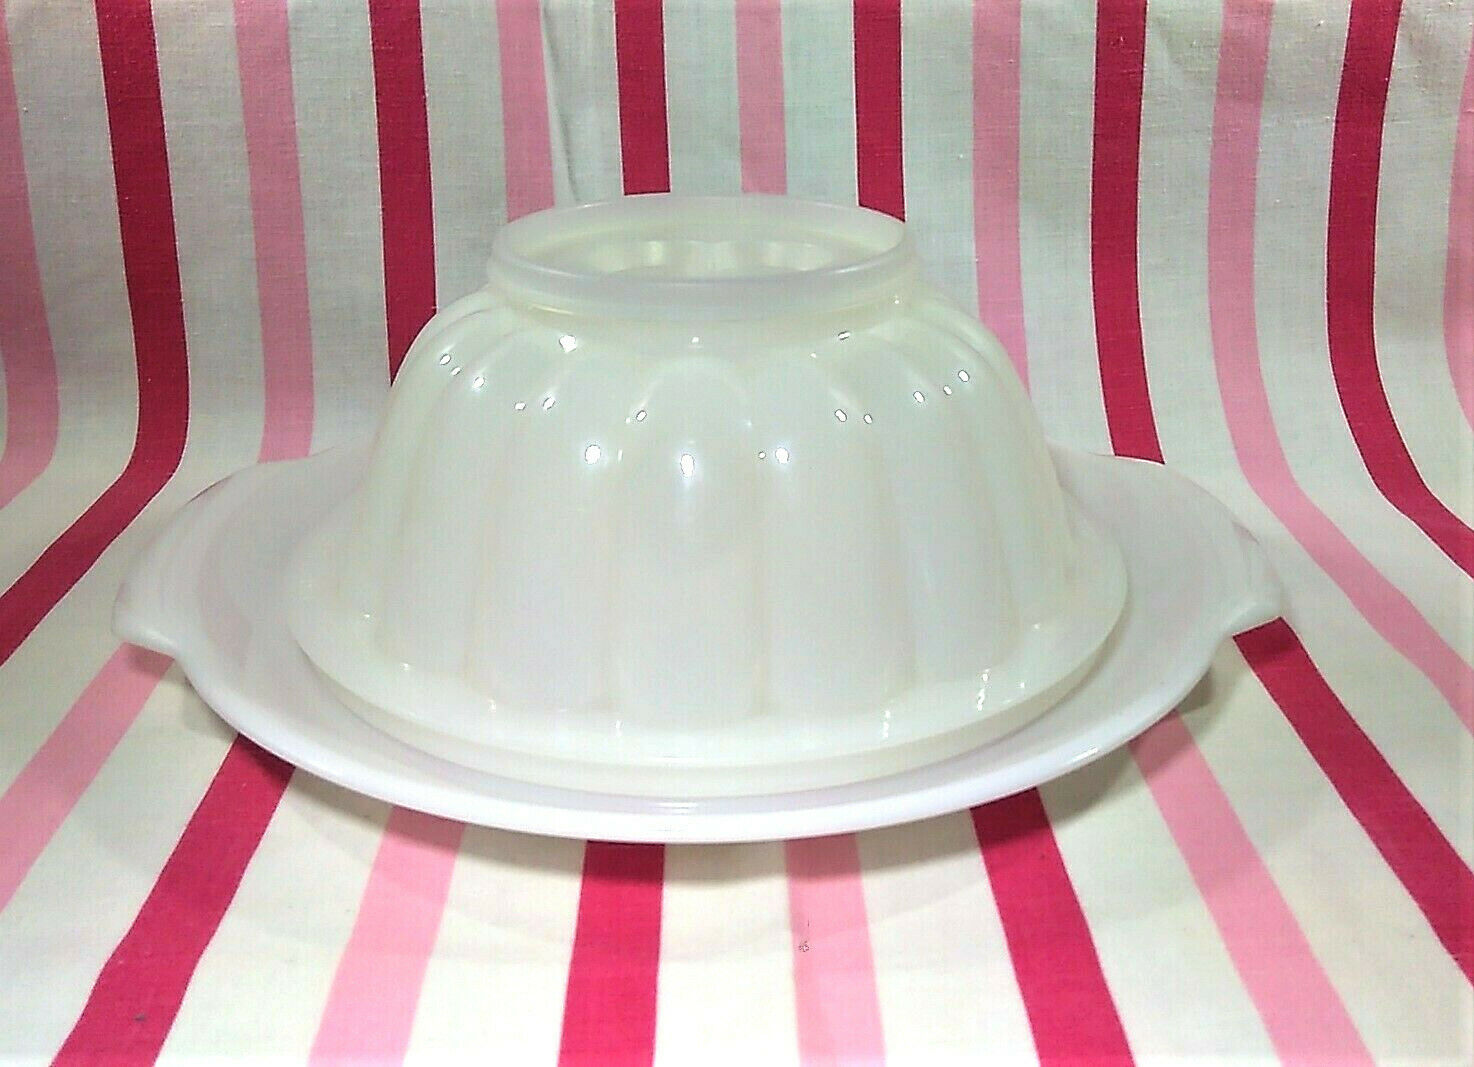 FUN Vintage Tupperware Jel-N-Serve Mold With White Tray and Heart Design Top image 2